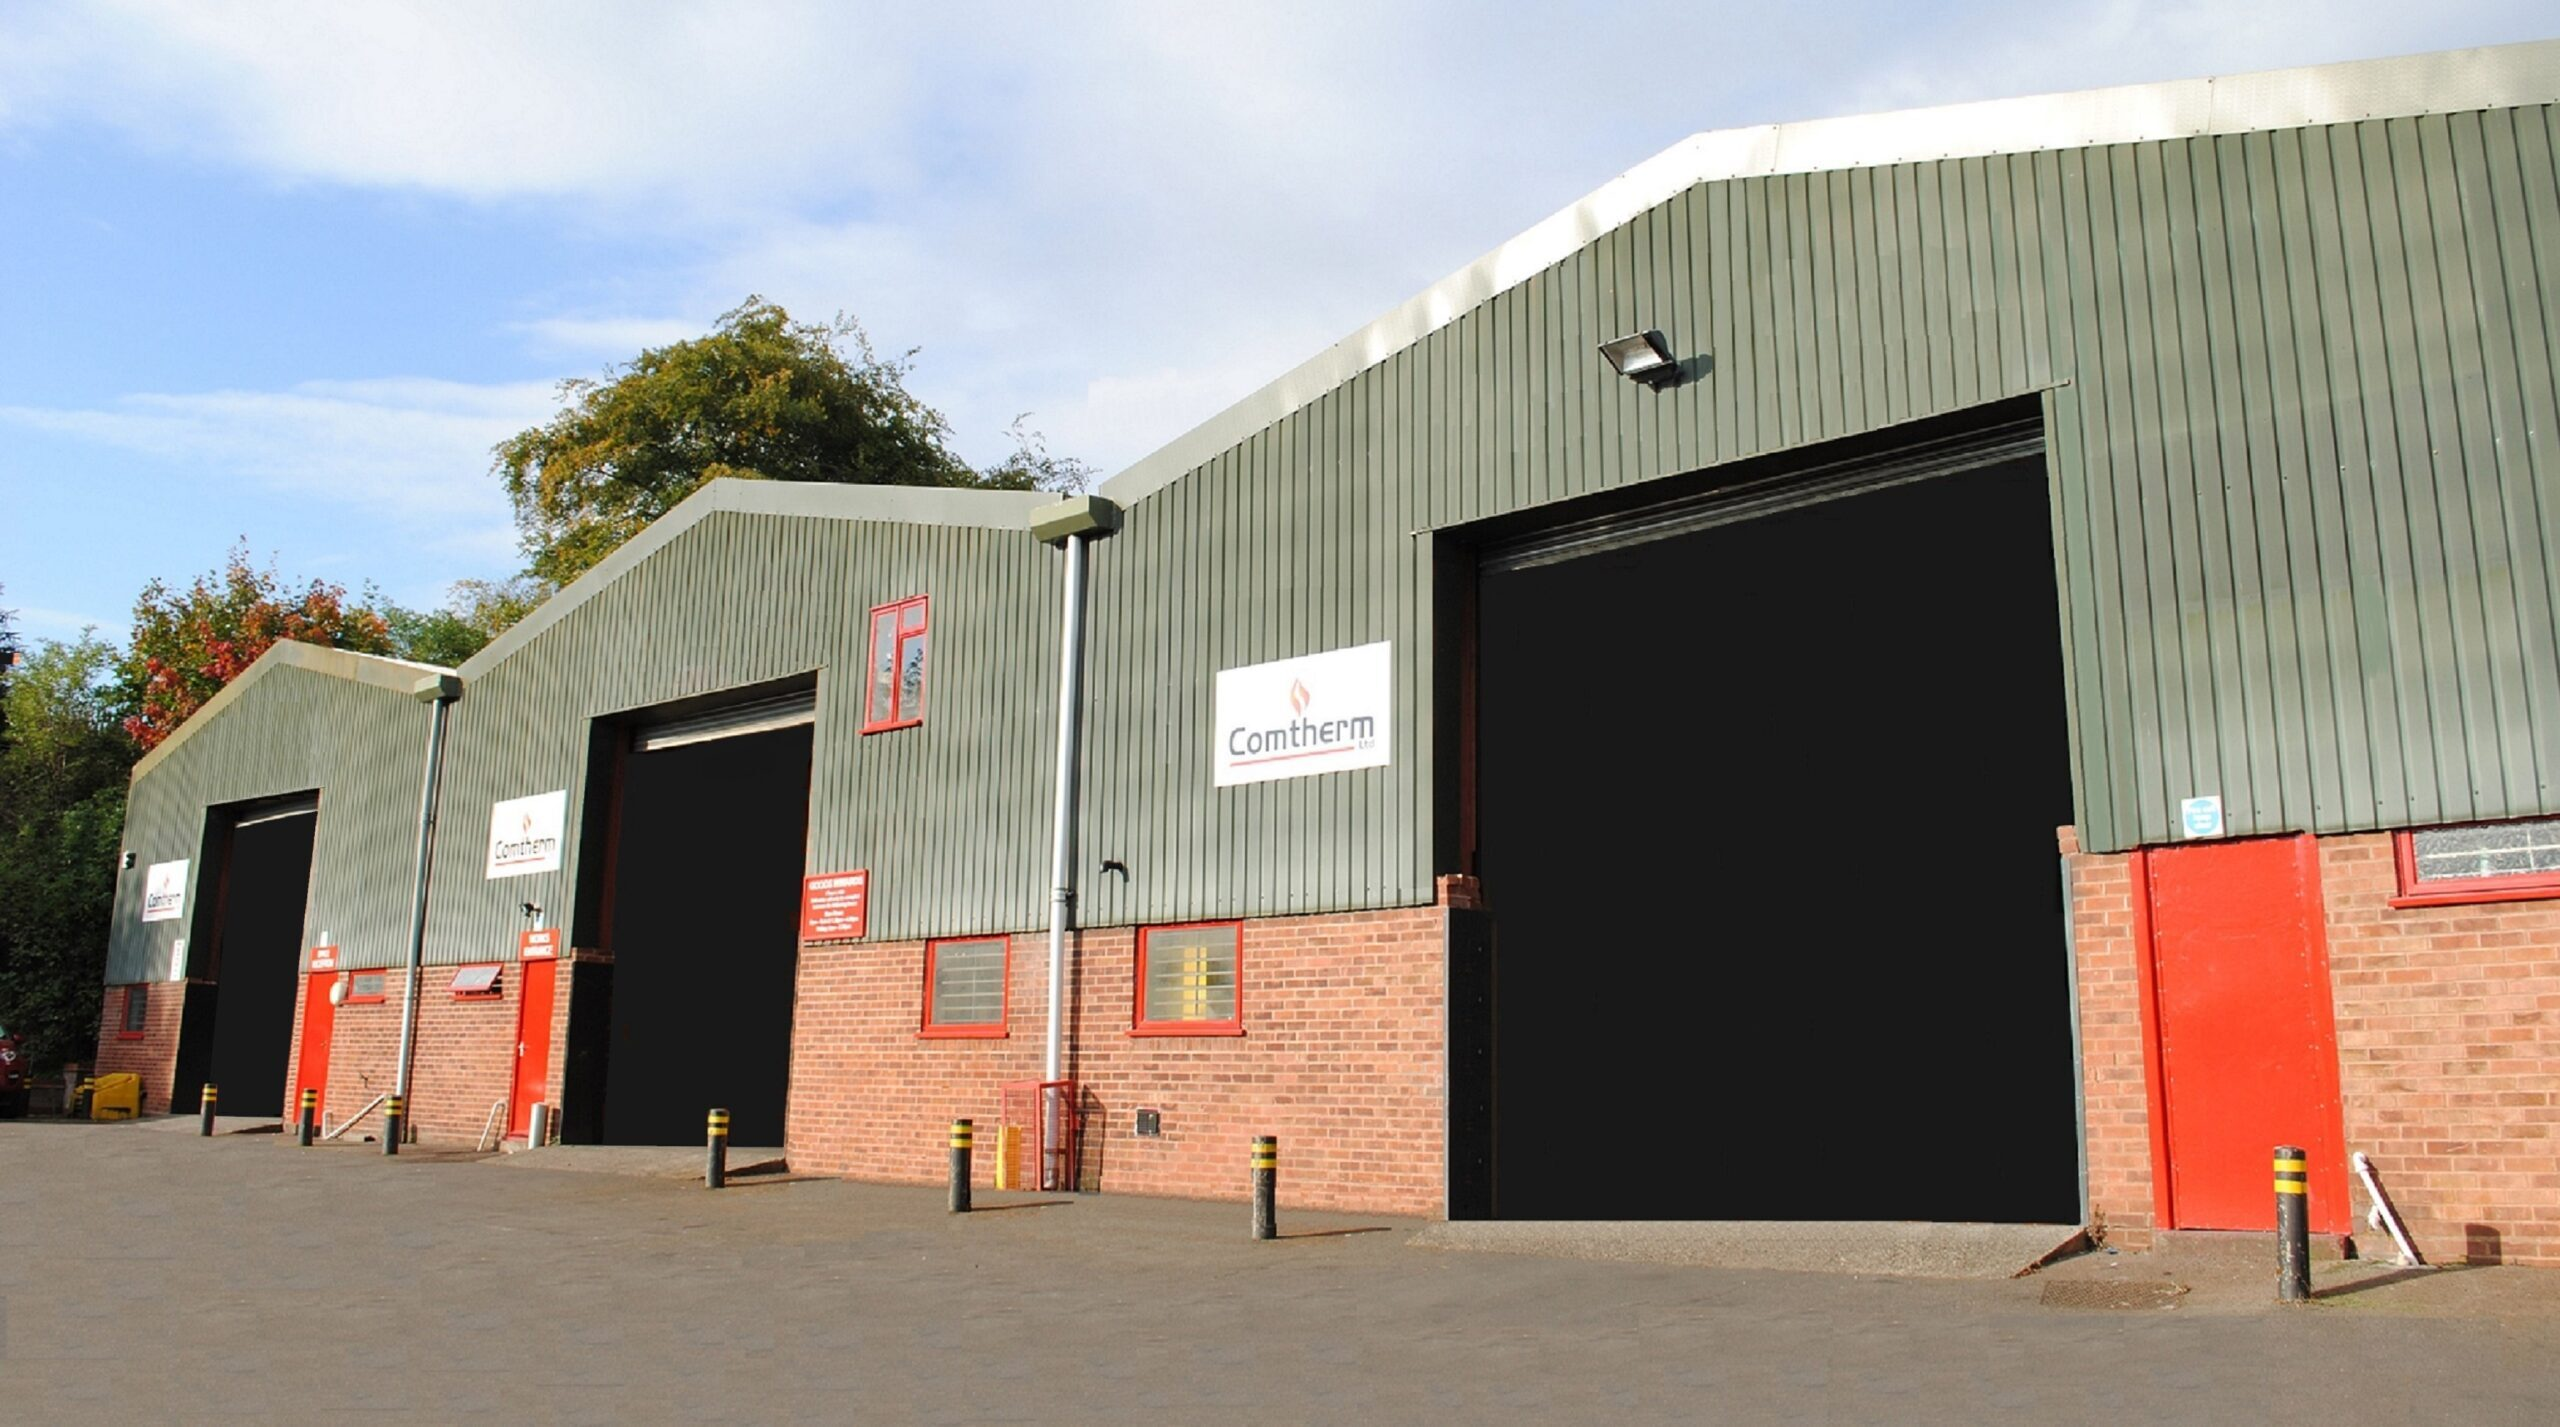 Contact Comtherm Factory - the hub of our team